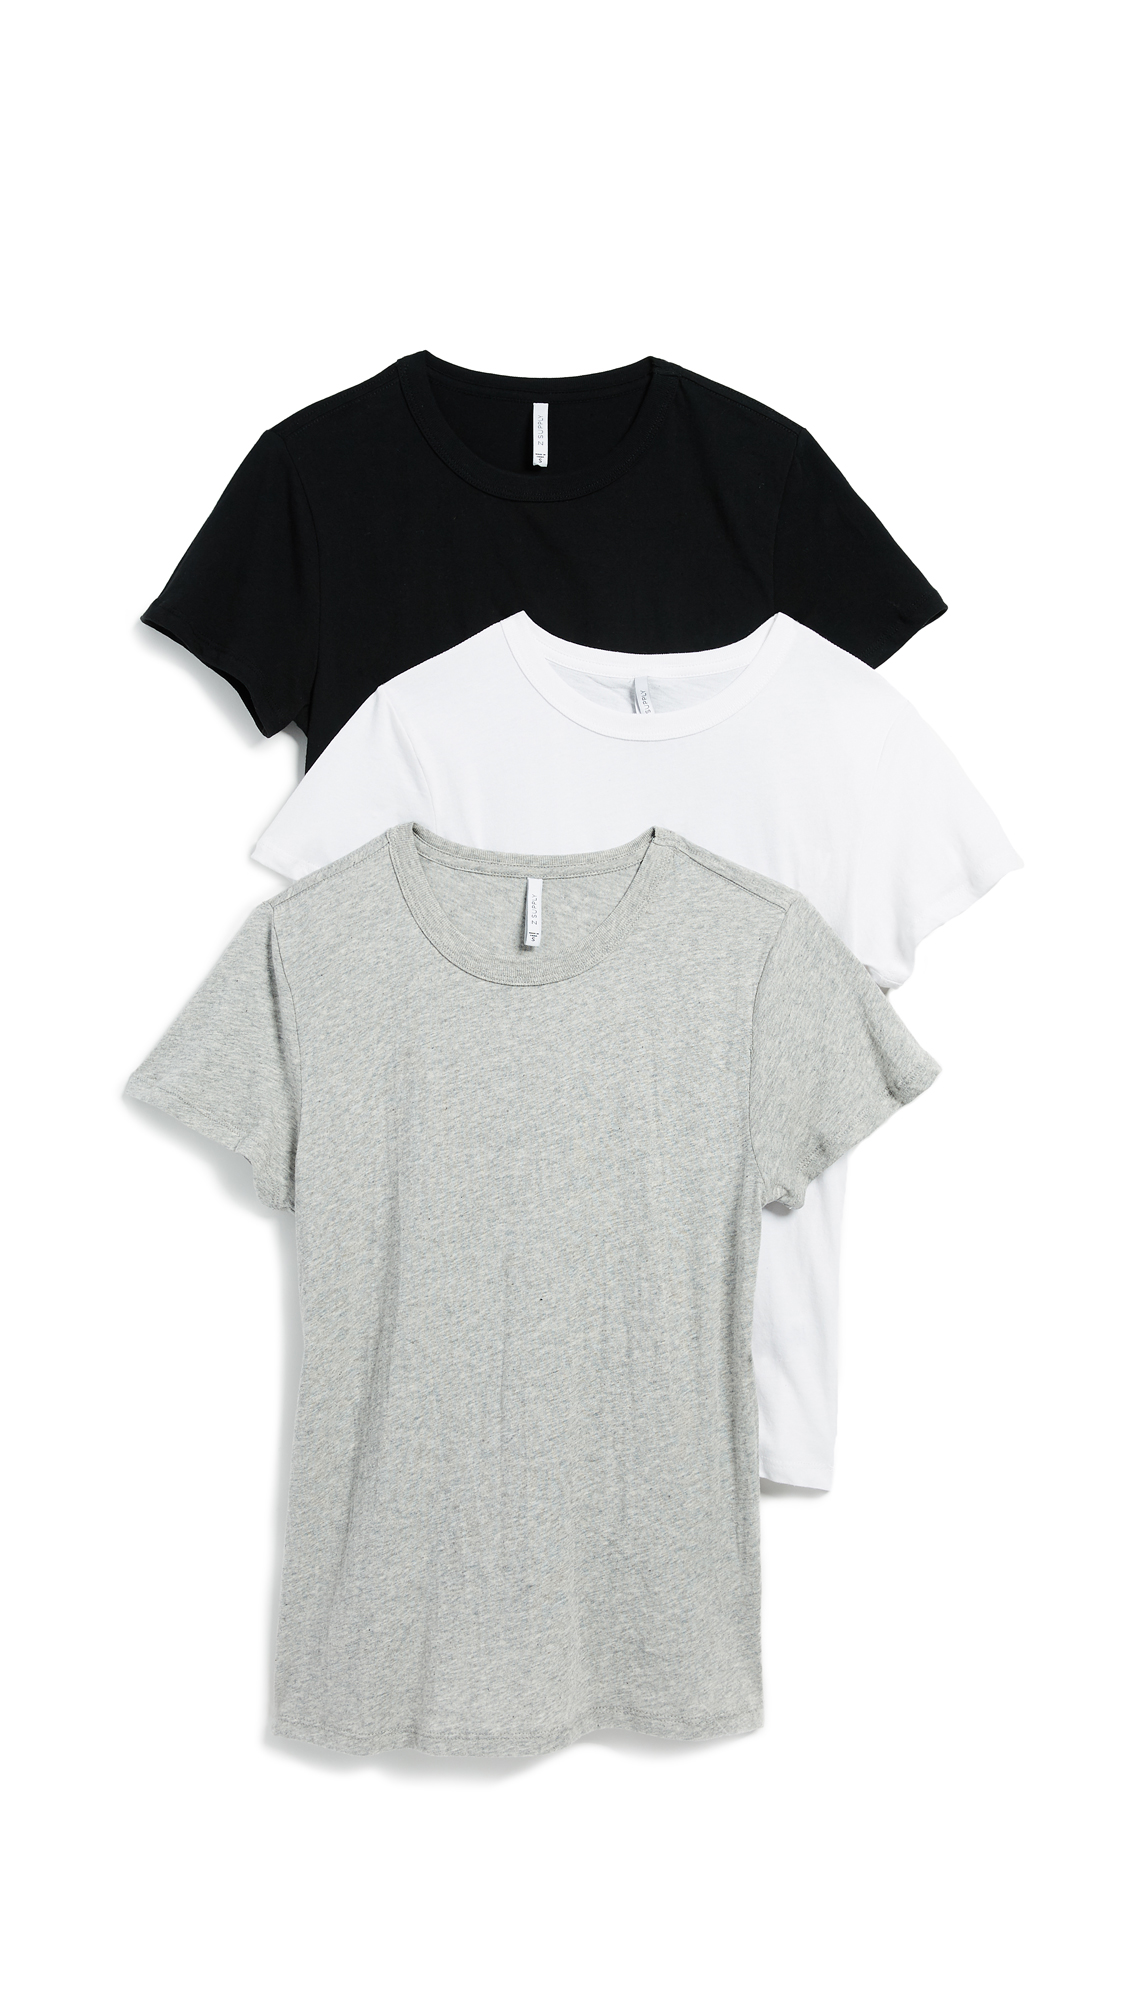 Z Supply Core Crew Tee 3 Pack In Black/White/Grey